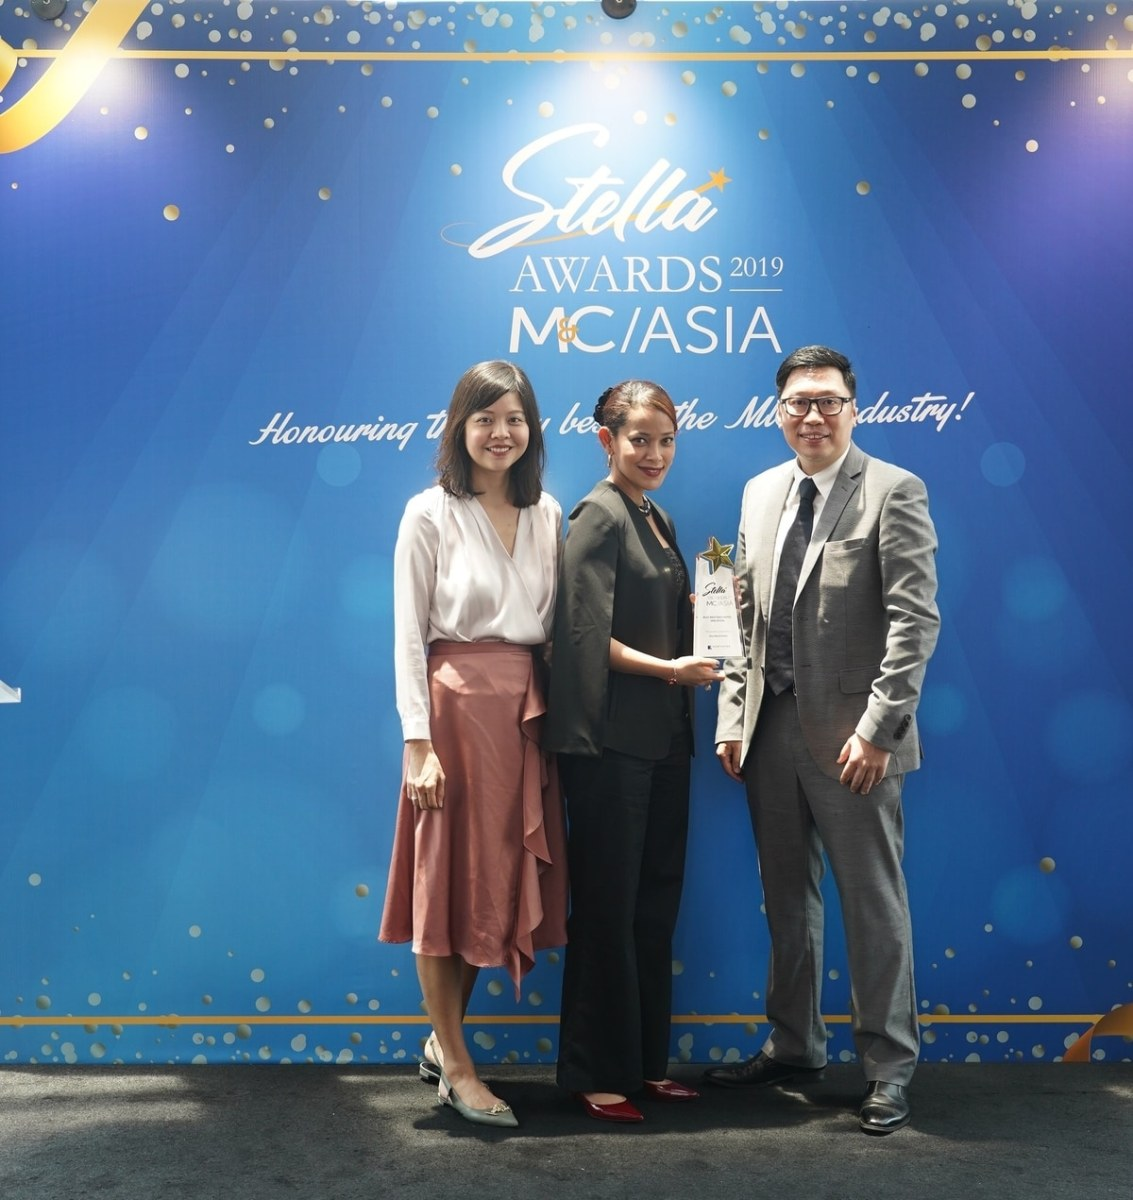 One World Hotel Petaling Jaya Named Best Meetings Hotel